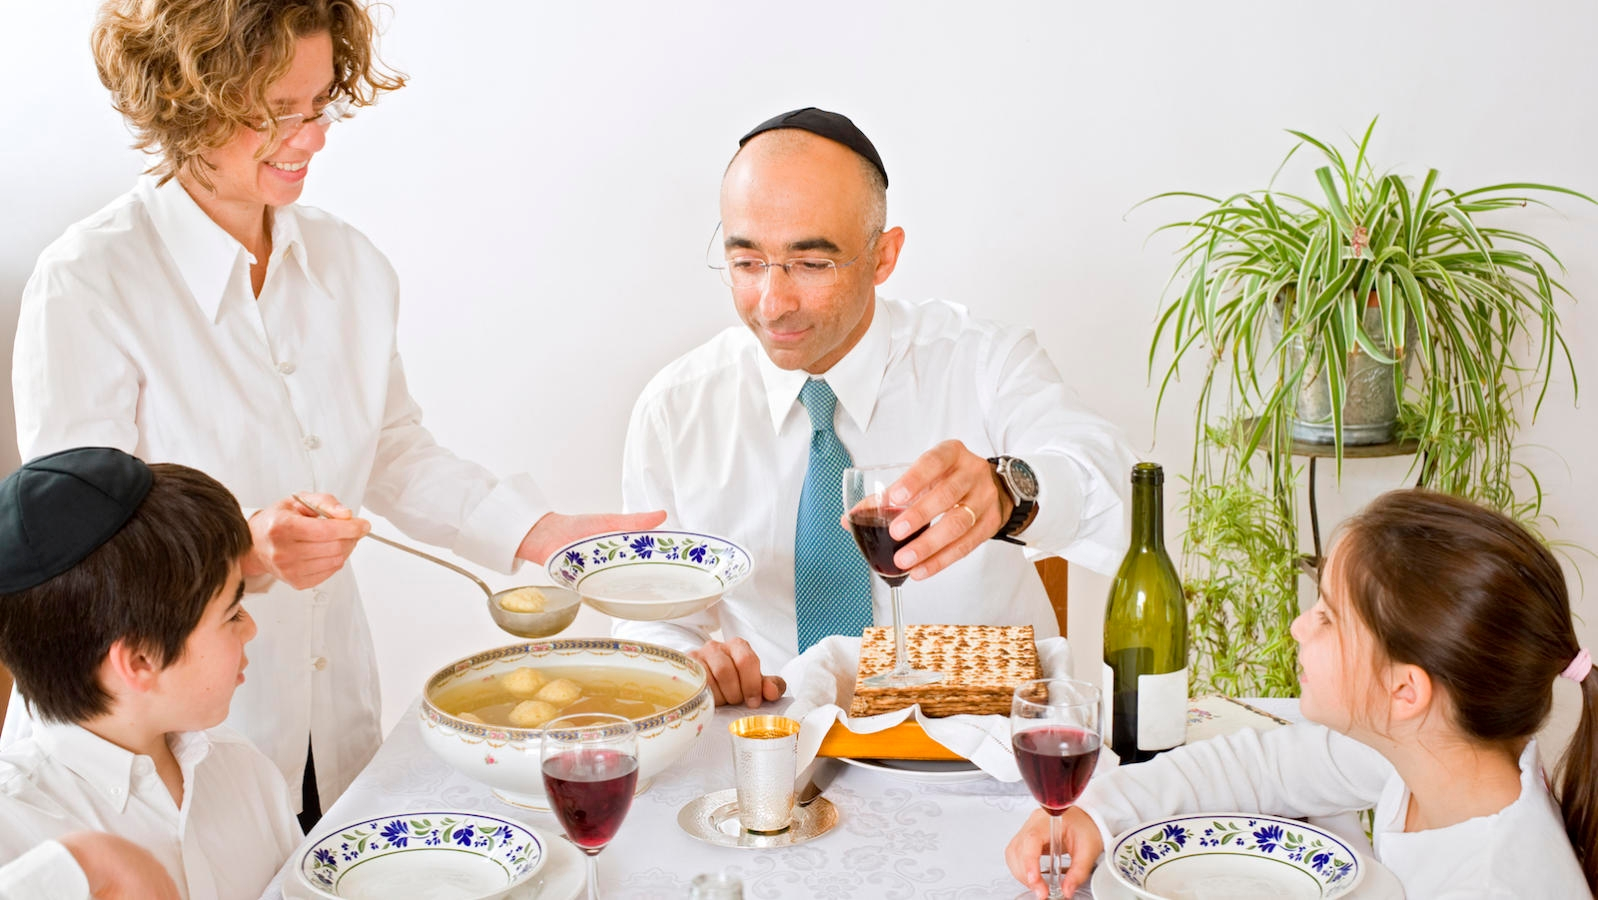 How To Greet People On Passover My Jewish Learning